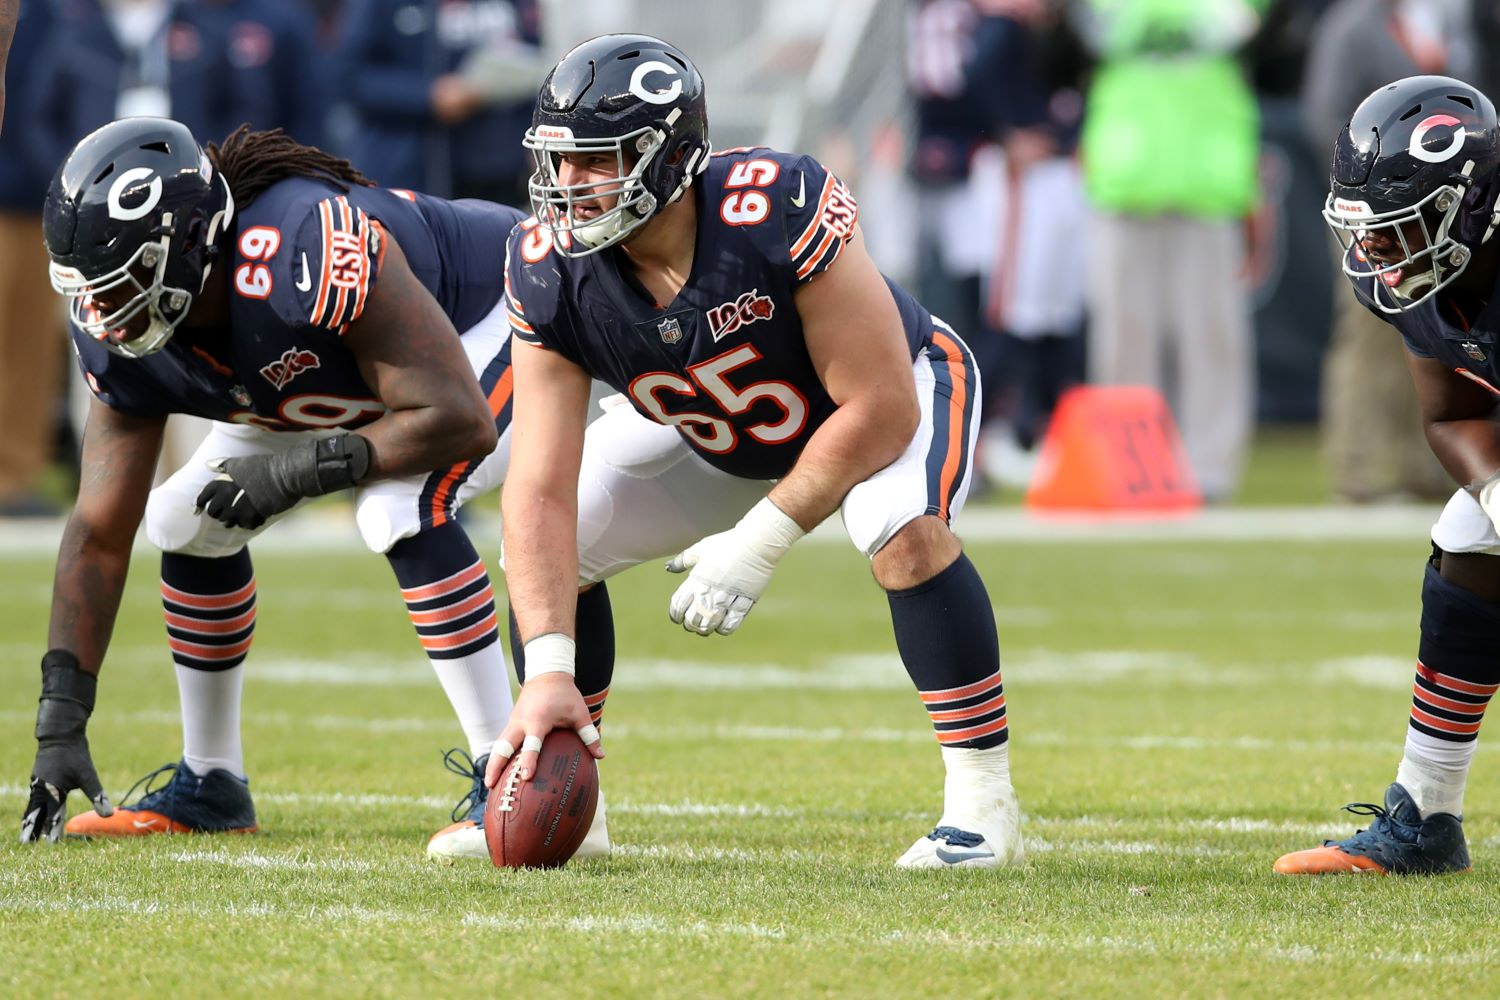 The Chicago Bears just lost Cody Whitehair to COVID-19. Can the team get back on track against the Tennessee Titans on Sunday?